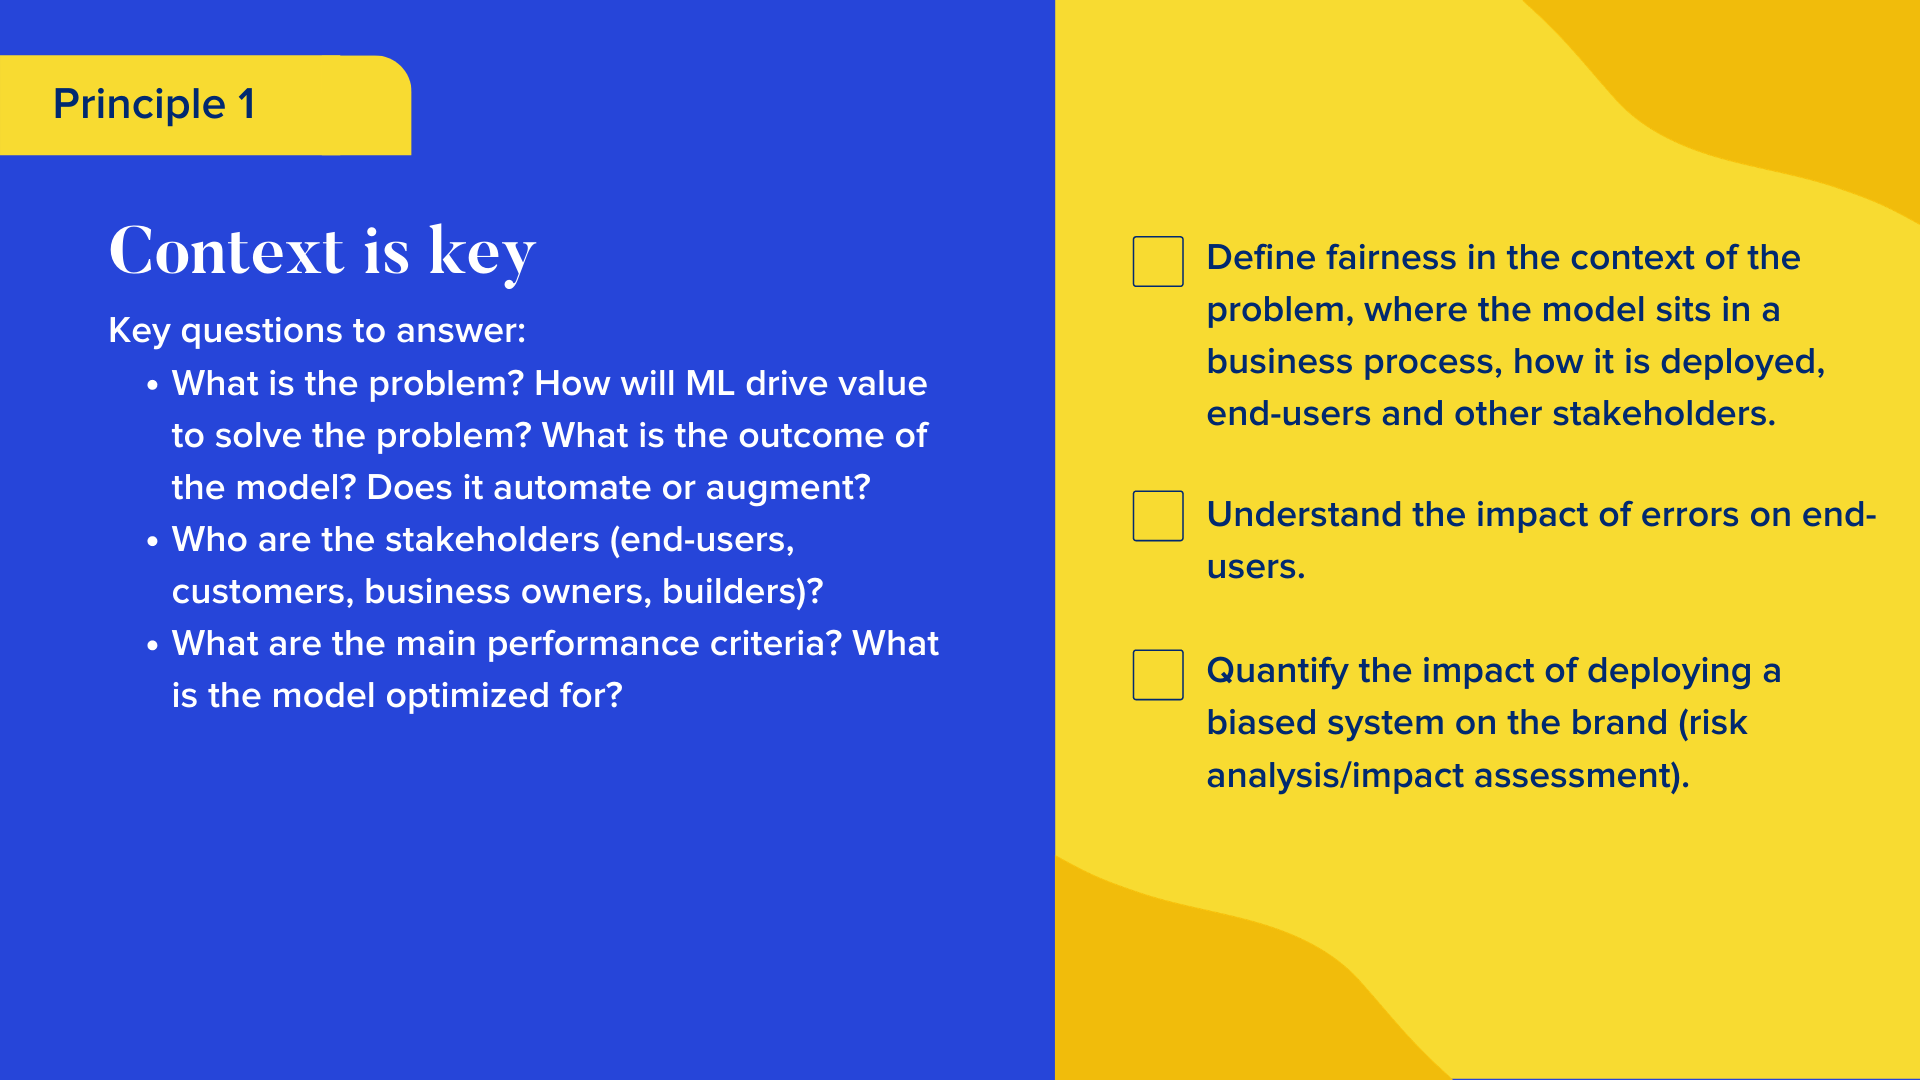 Key questions to answer  What is the problem? How will ML drive value to solve the problem? What is the outcome of the model? Does it automate or augment?  Who are the stakeholders (end-users, customers, business owners, builders)? What are the main performance criteria? What is the model optimized for?  Checklist  Define fairness in the context of the problem, where the model sits in a business process, how it is deployed, end-users and other stakeholders. Understand the impact of errors on end-users. Quantify the impact of deploying a biased system on the brand (risk analysis/impact assessment).